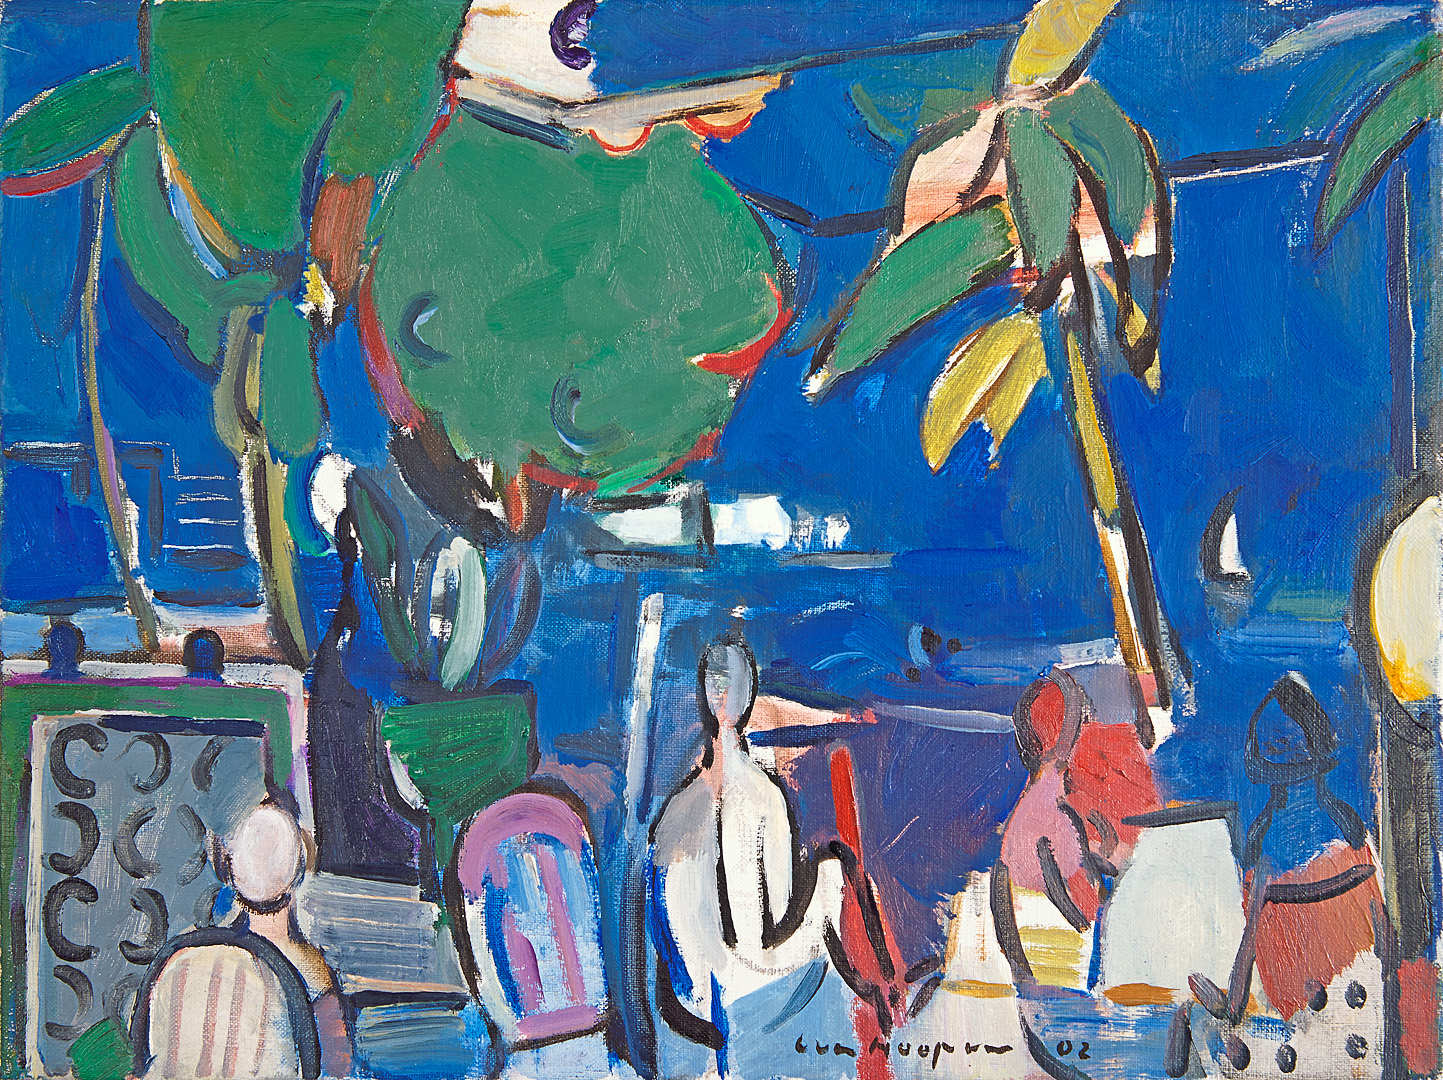 Croisette, Cannes bij nacht, 2002 Paul Hugo ten Hoopen (1927-) - Kunsthandel Studio 2000